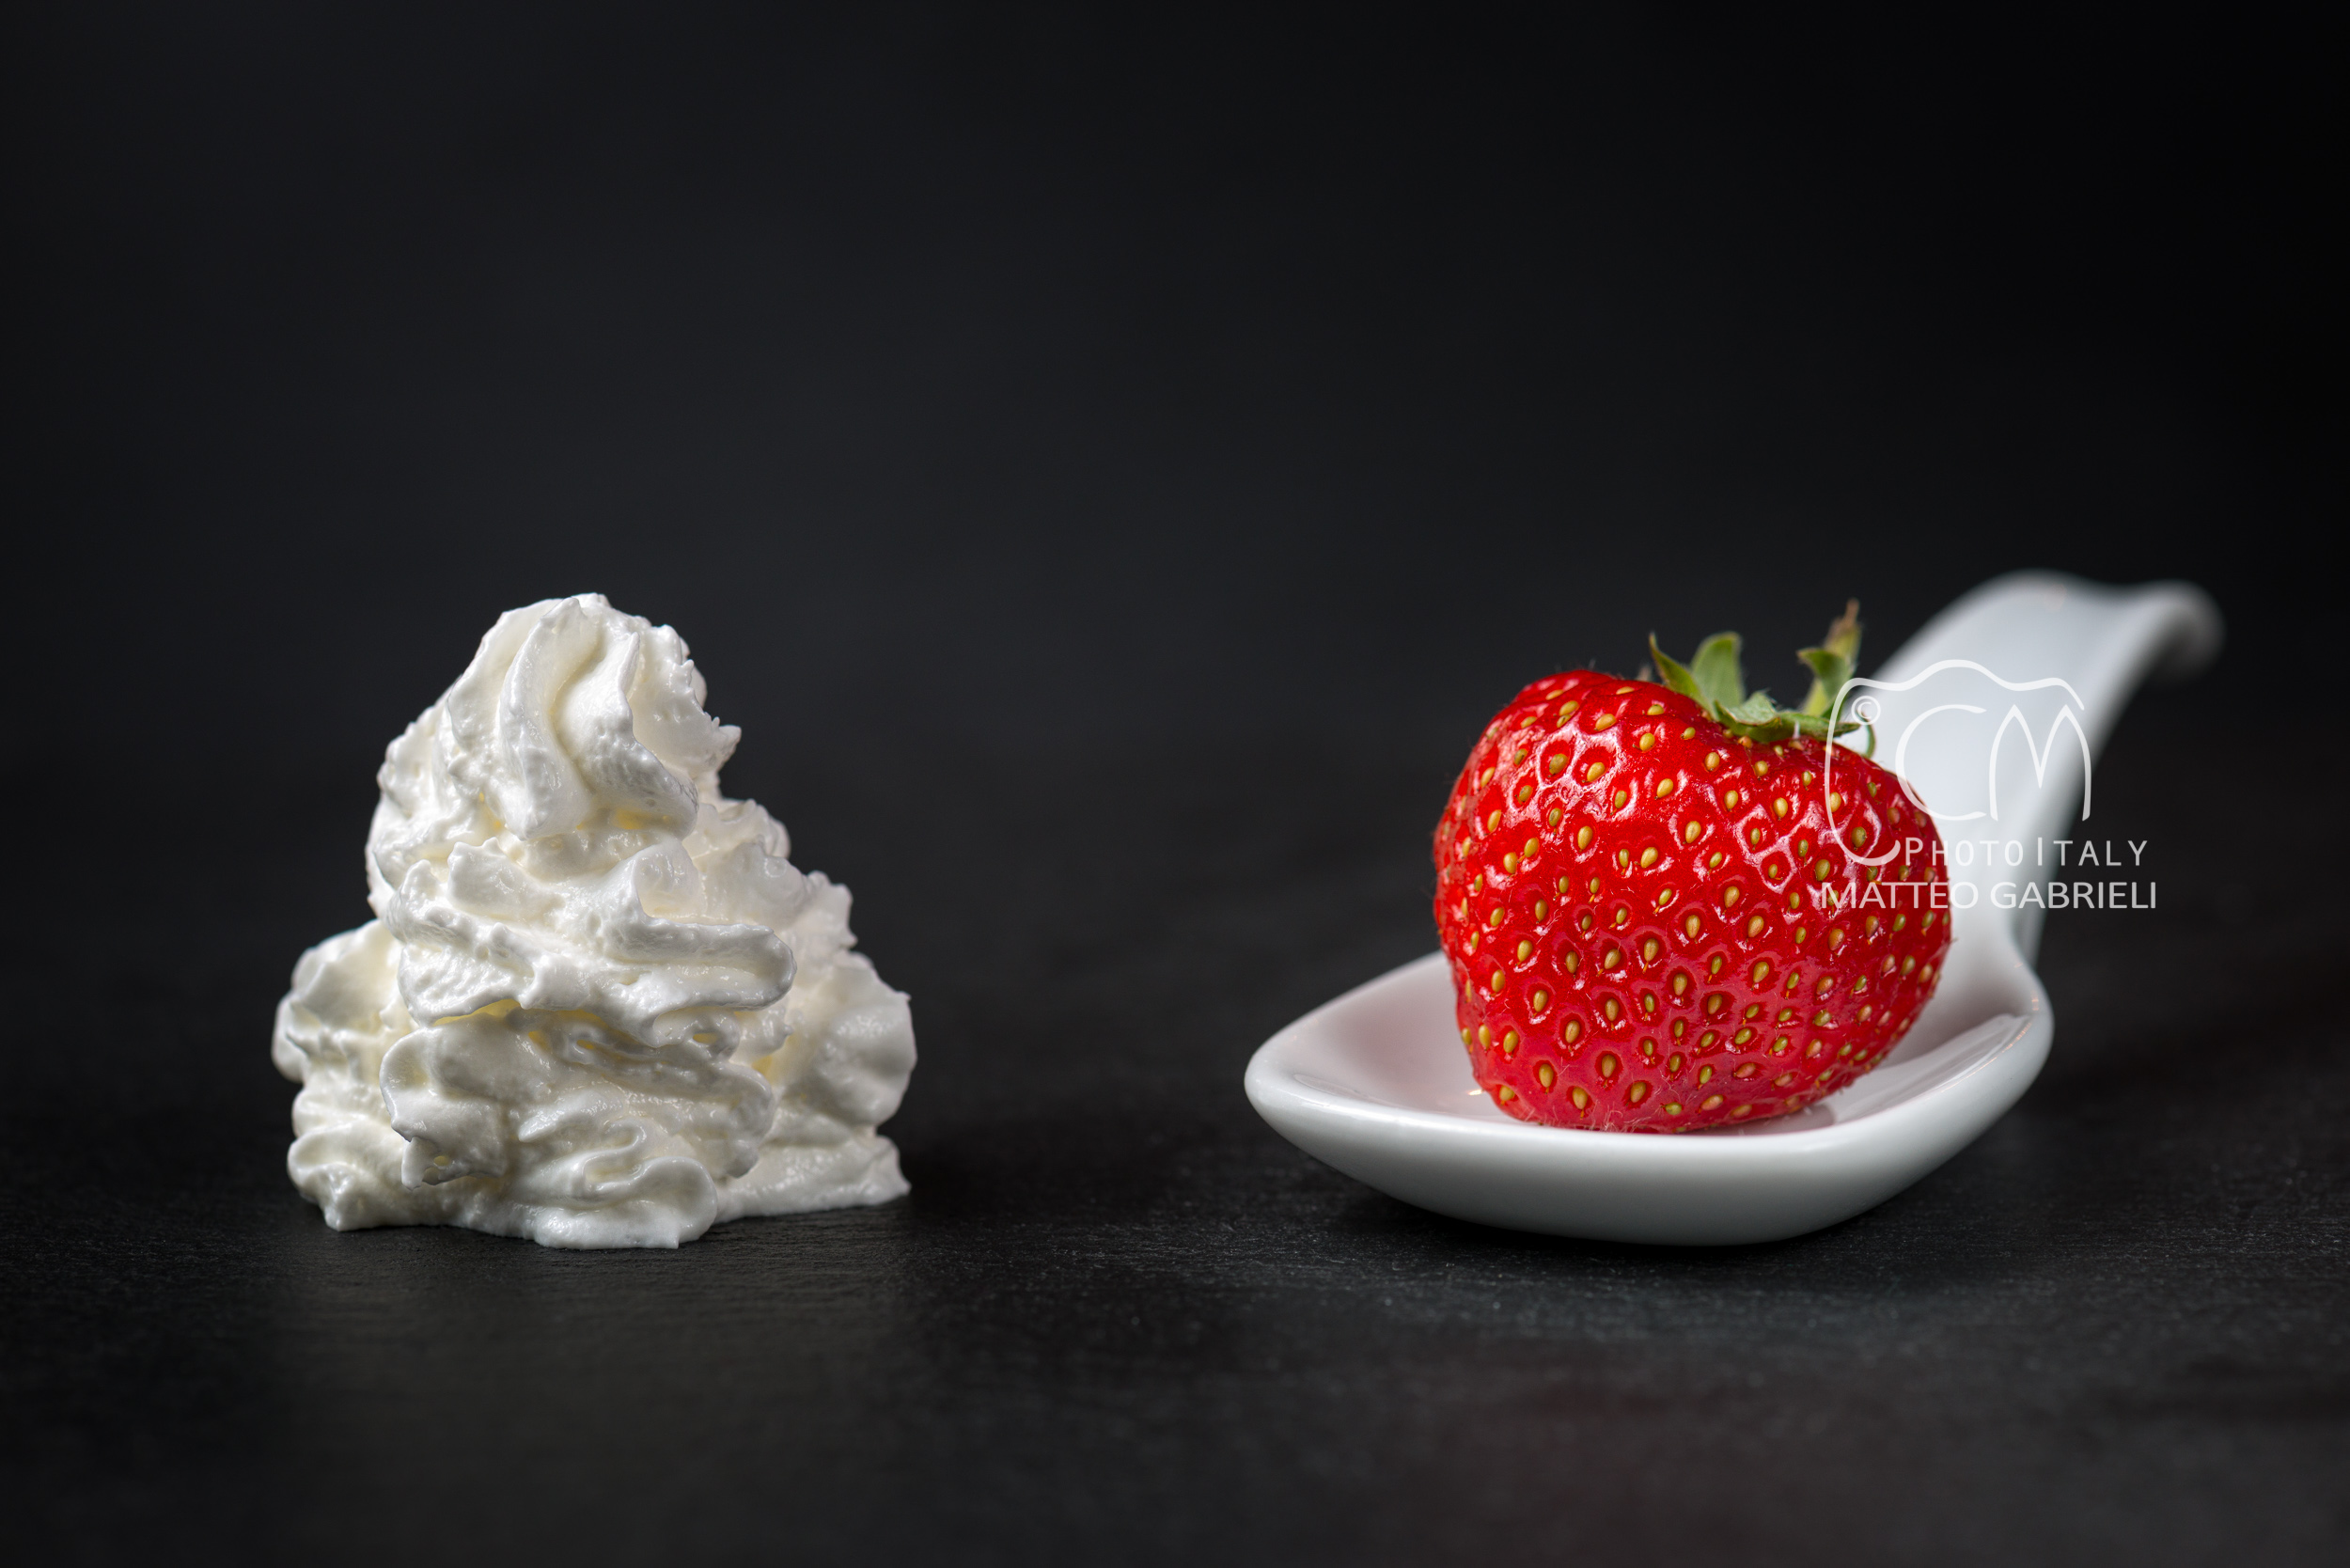 The whipped cream meets the strawberry in the spoon, minimalist style food